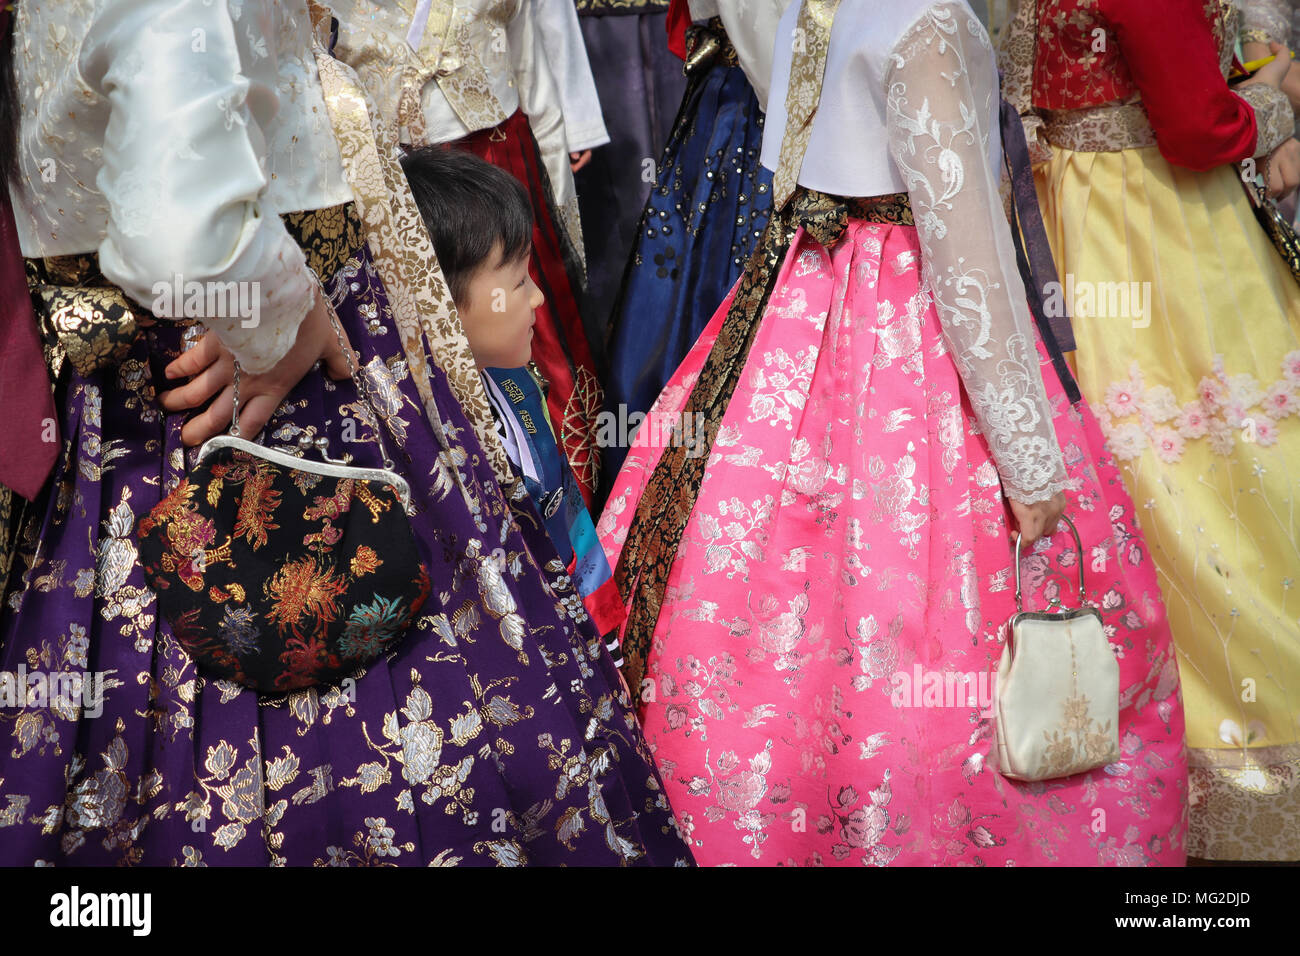 A little boy hides among the full skirts in a group of Korean women wearing the traditional hanbok fashion, in brilliant colors. Viewed shoulders down. - Stock Image